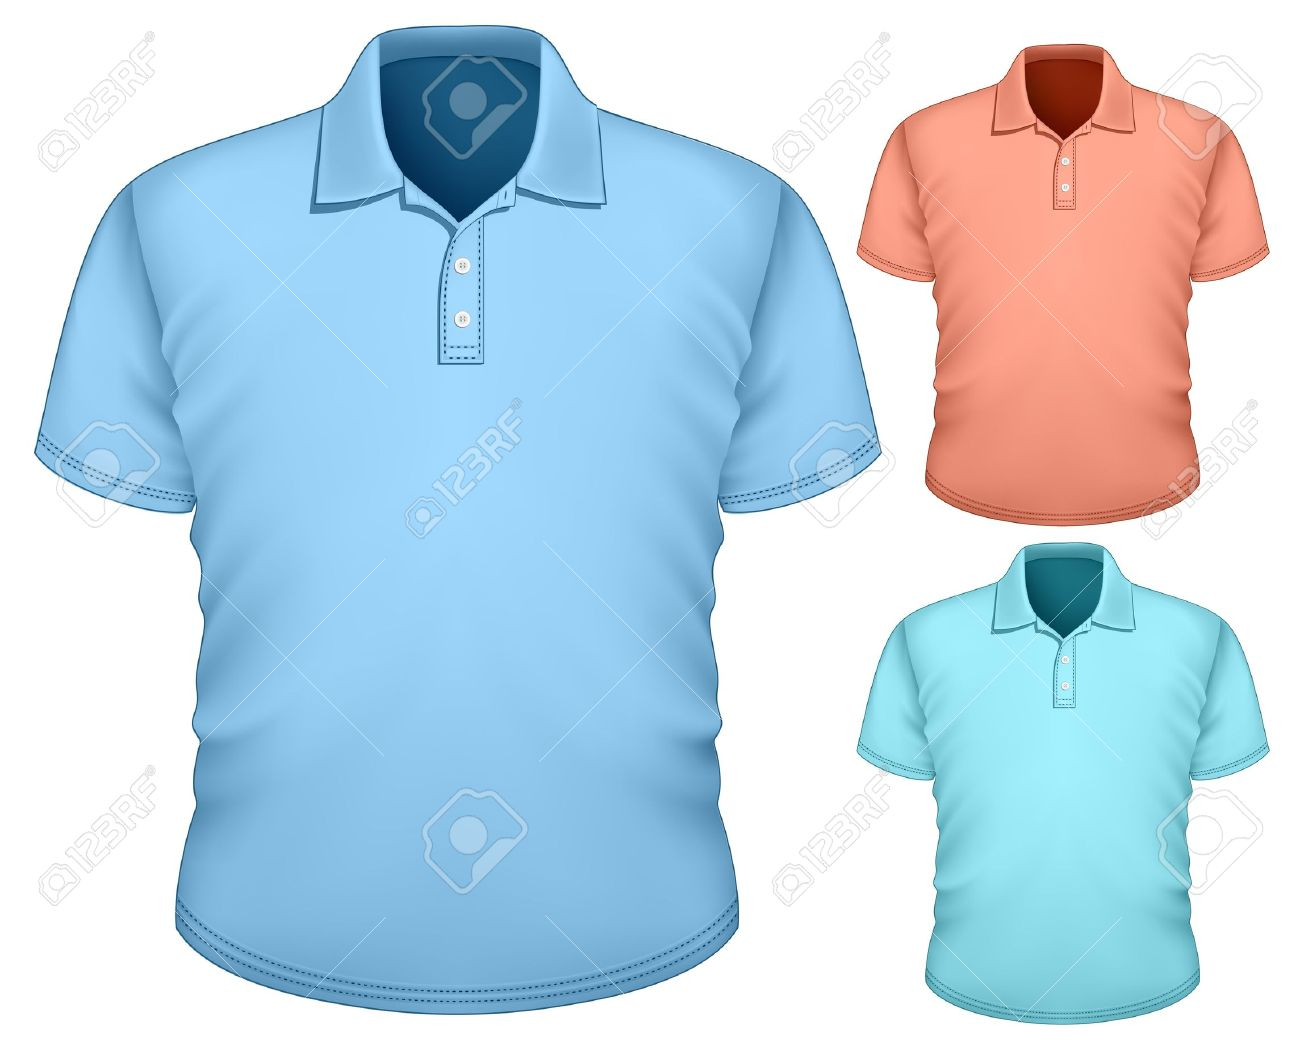 Men S Polo-shirt Design Template Royalty Free Cliparts, Vectors, And ...